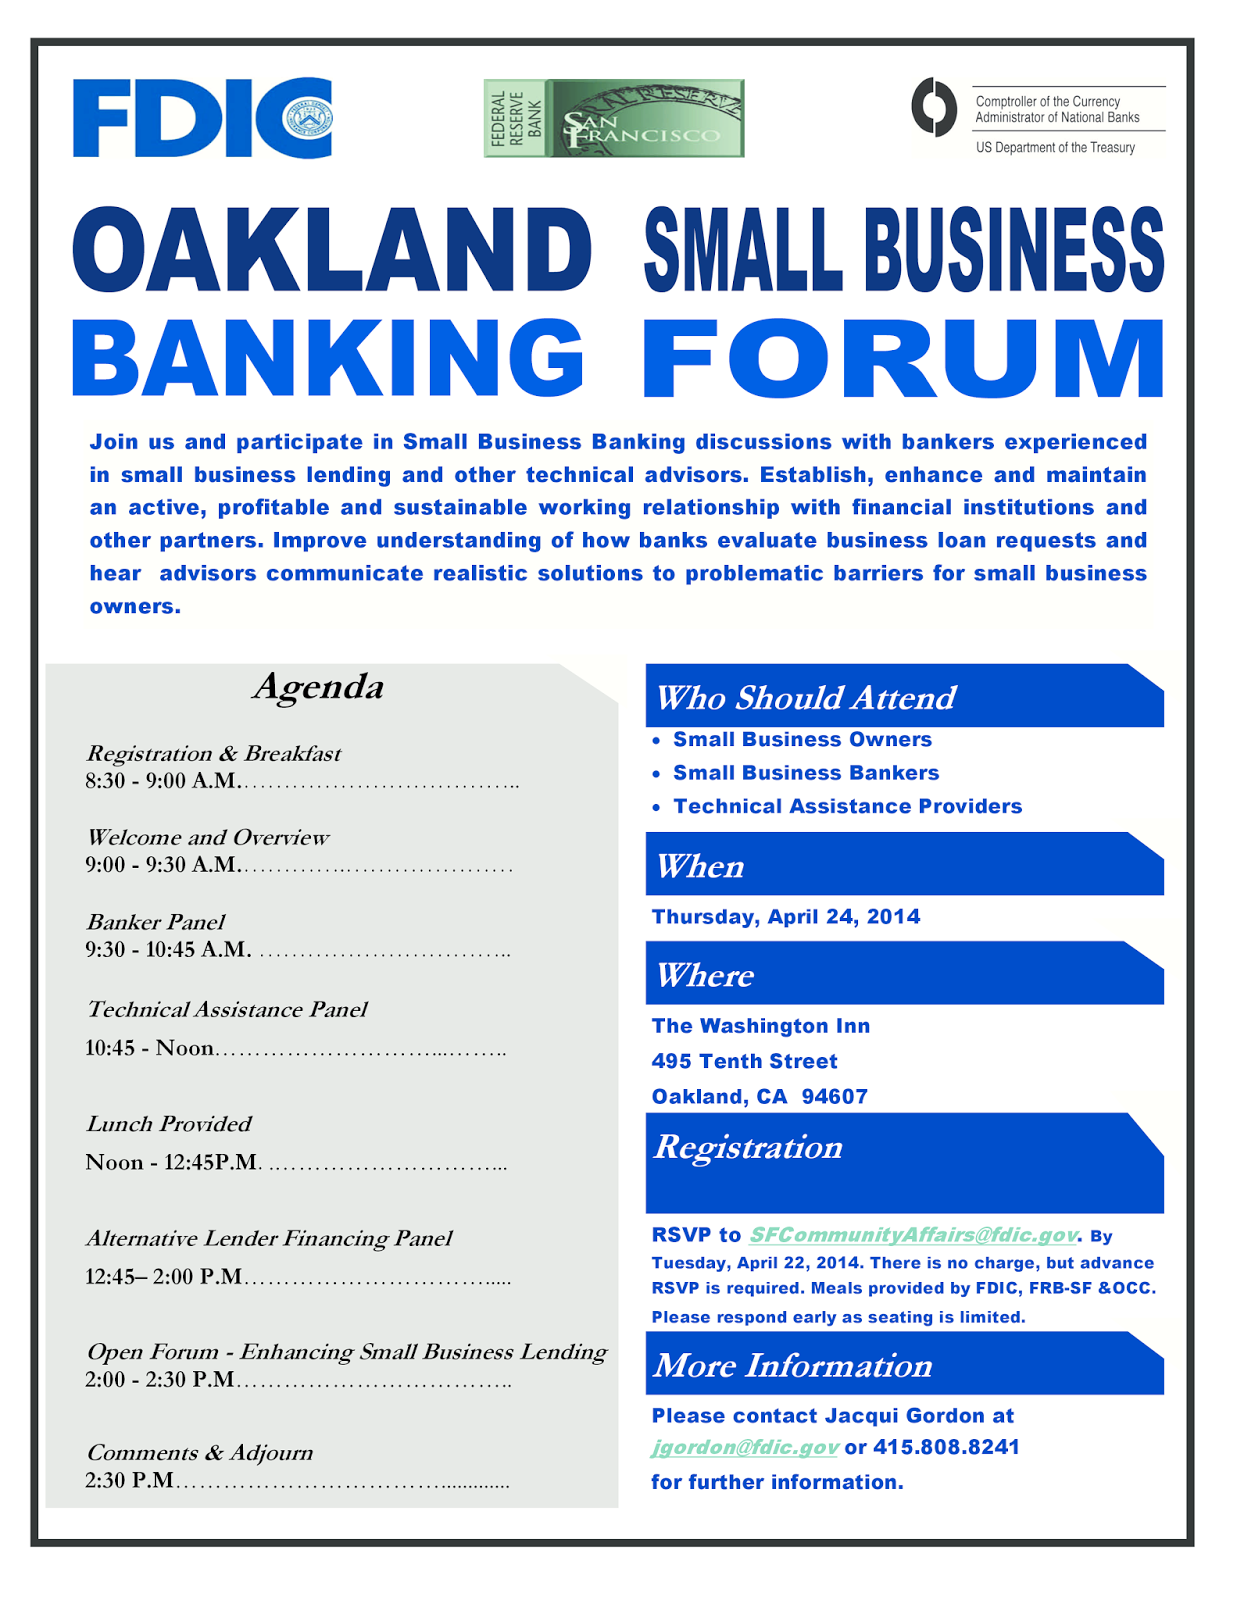 Oakland Chamber News & Updates Small Business Banking. Academic Projects Resume. Chemist Resume Skills. Colourful Resume Templates. Sample Student Resumes. Easy Resume. Private Tutor Resume. Domestic Engineer Resume Sample. Fundraising Resume